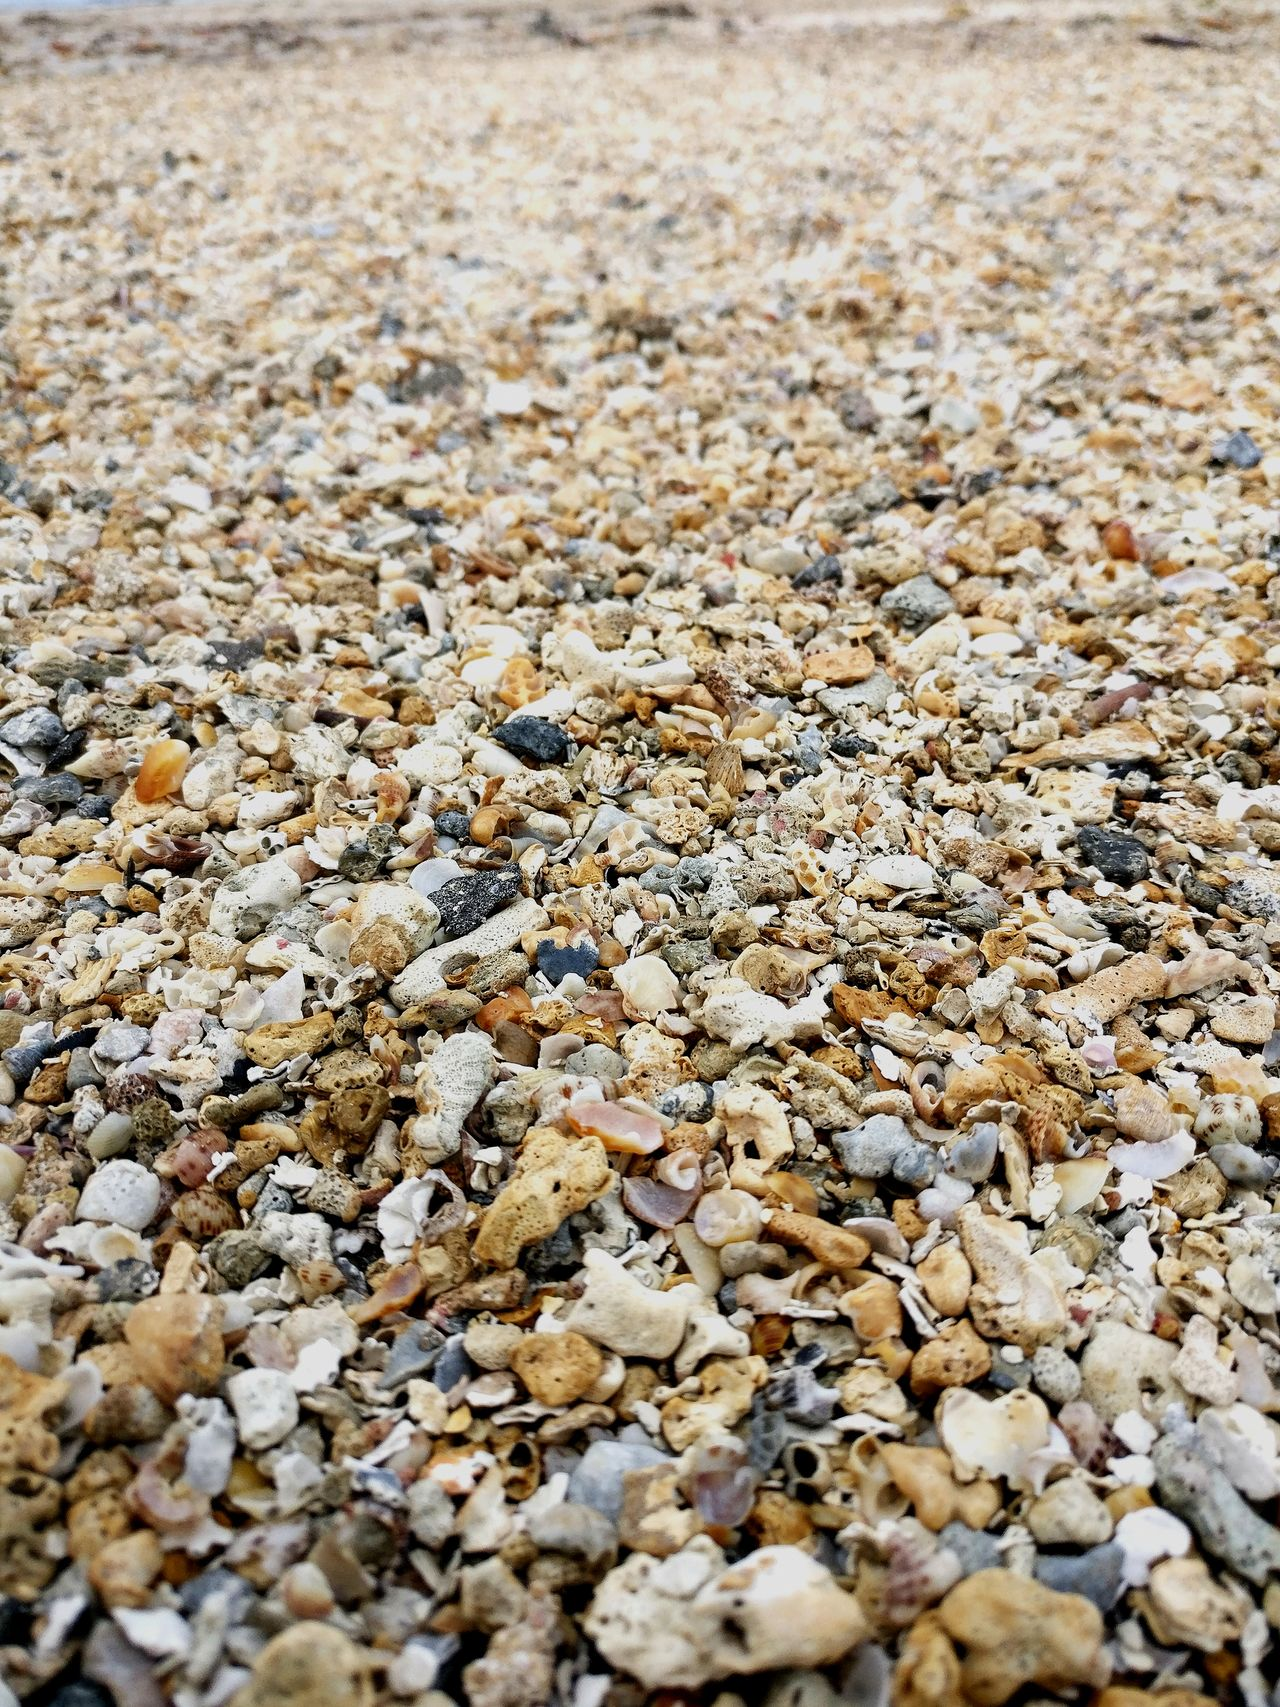 Full Frame Nature Outdoors Day Backgrounds Beach Pebble No People Textured  Tranquility Beauty In Nature Close-up Pebble Beach Boipeba Bahia Brazil